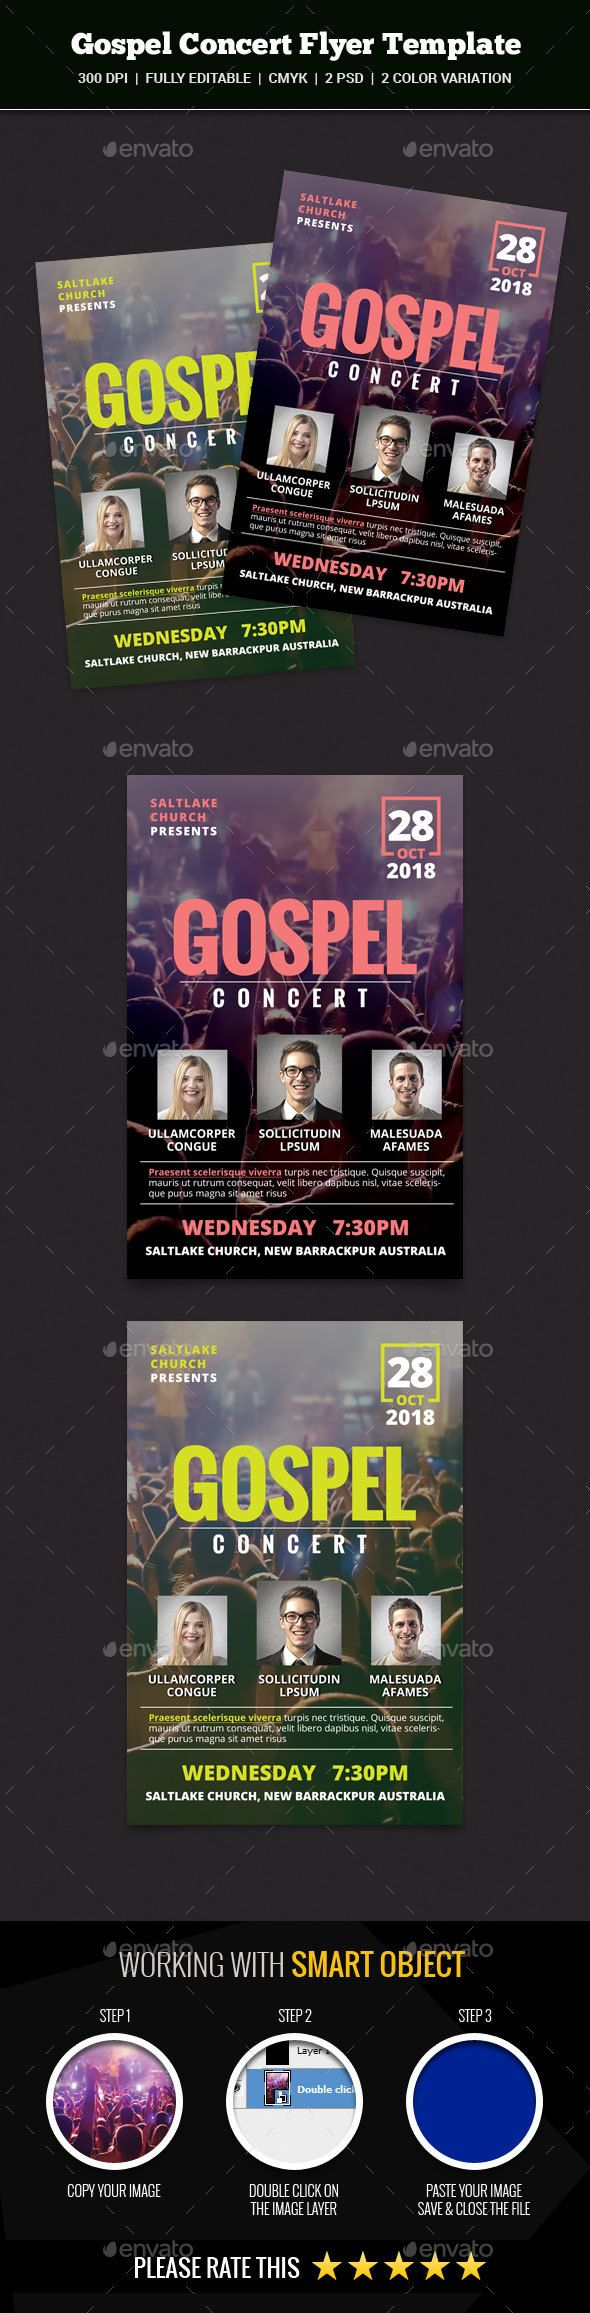 Gospel Concert Flyer by abira This is a Gospel Concert Flyer Template Which is fully editablePack included: 2 PSD Files 6.25 x 4.25 inches.(0.25 bleed area.) 30